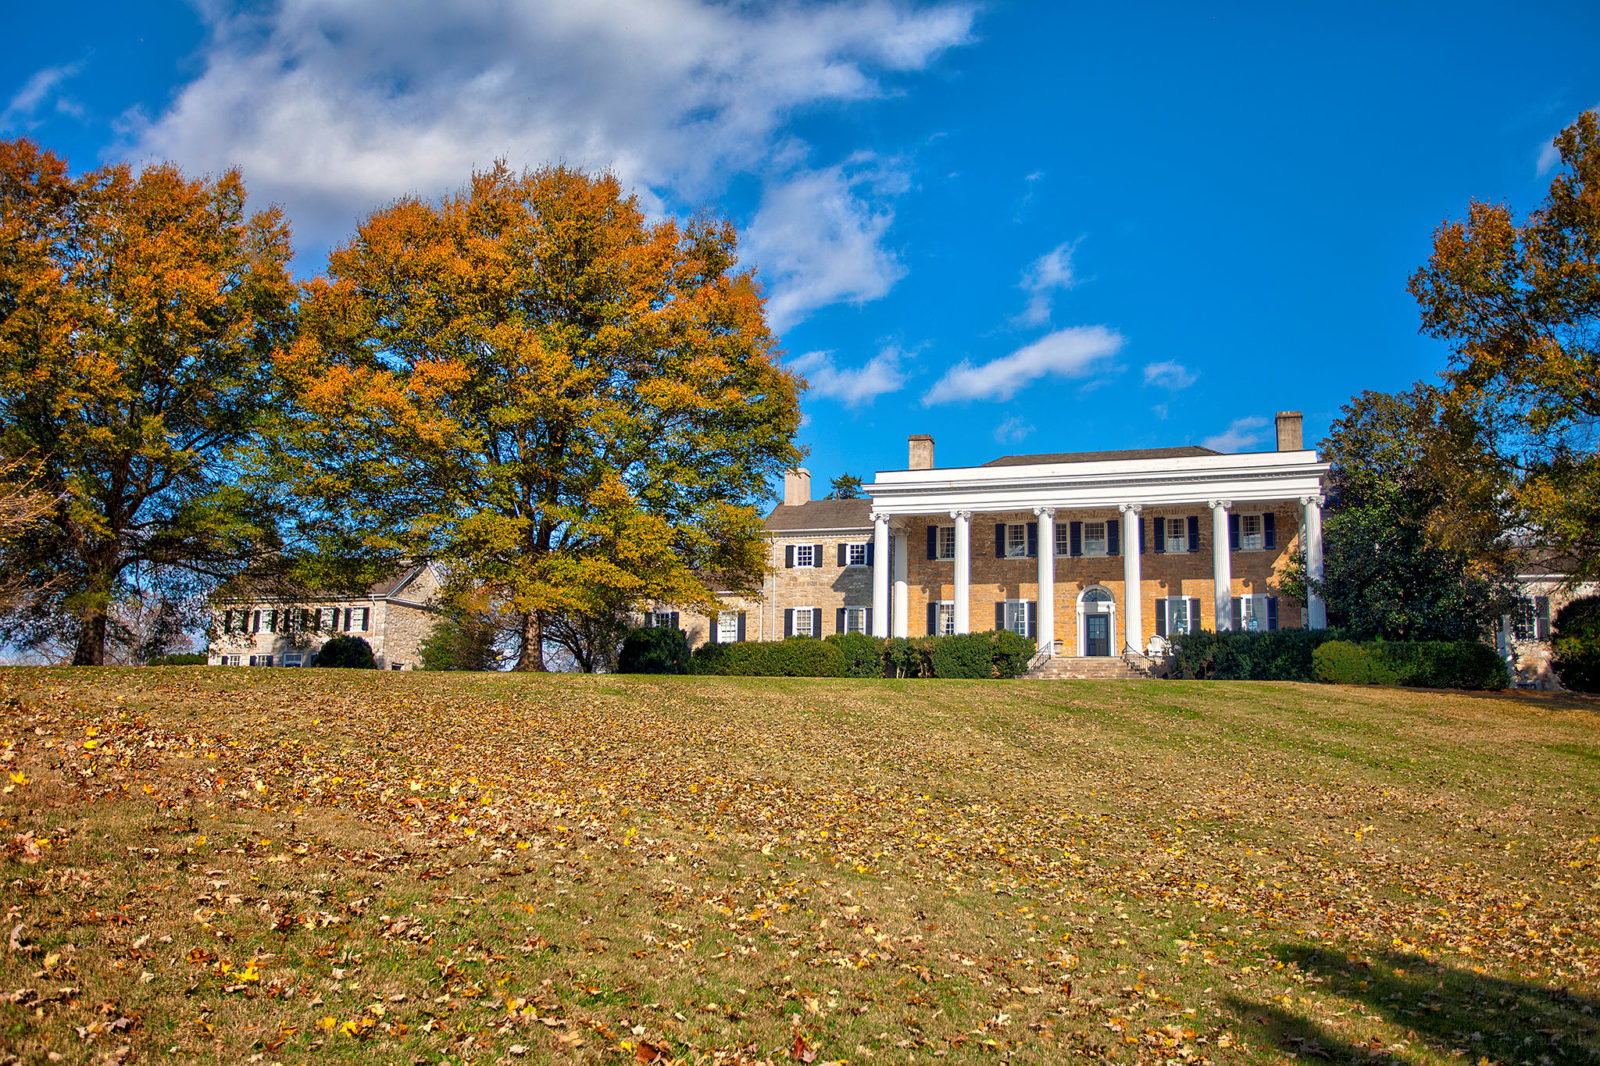 The manor home at Carter Hall.